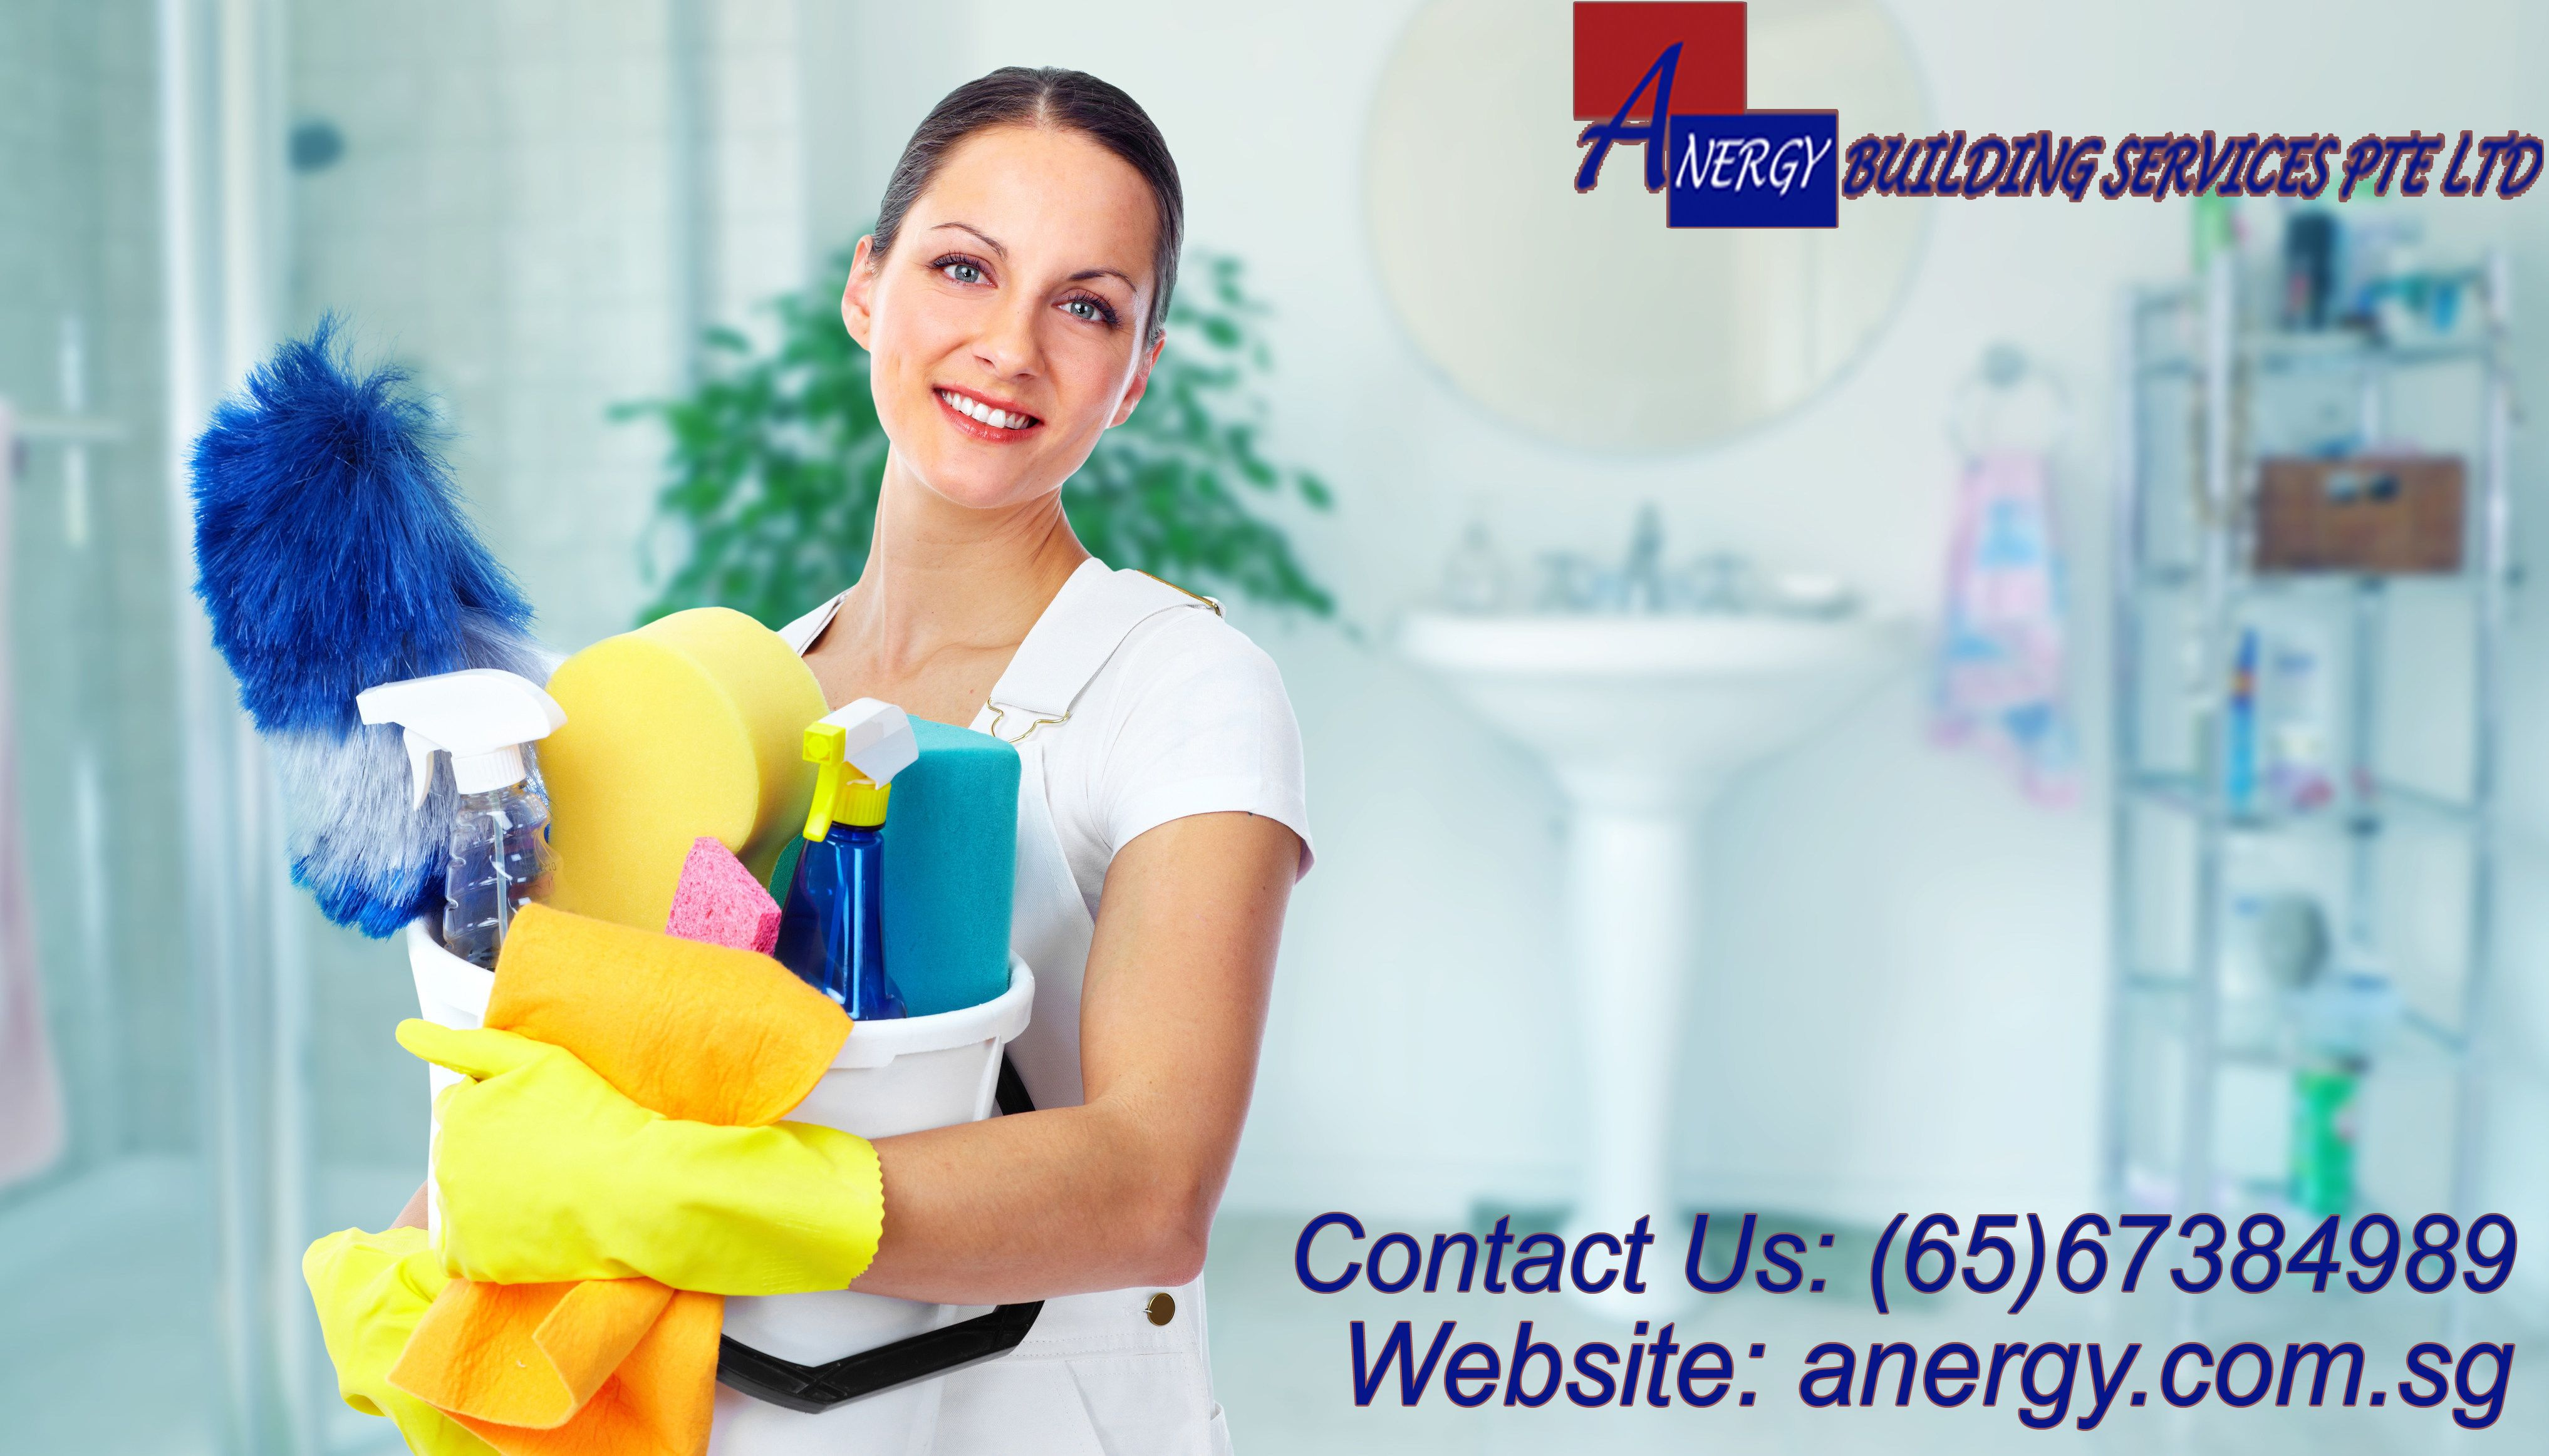 Anergy Building Services is the best cleaning equipment